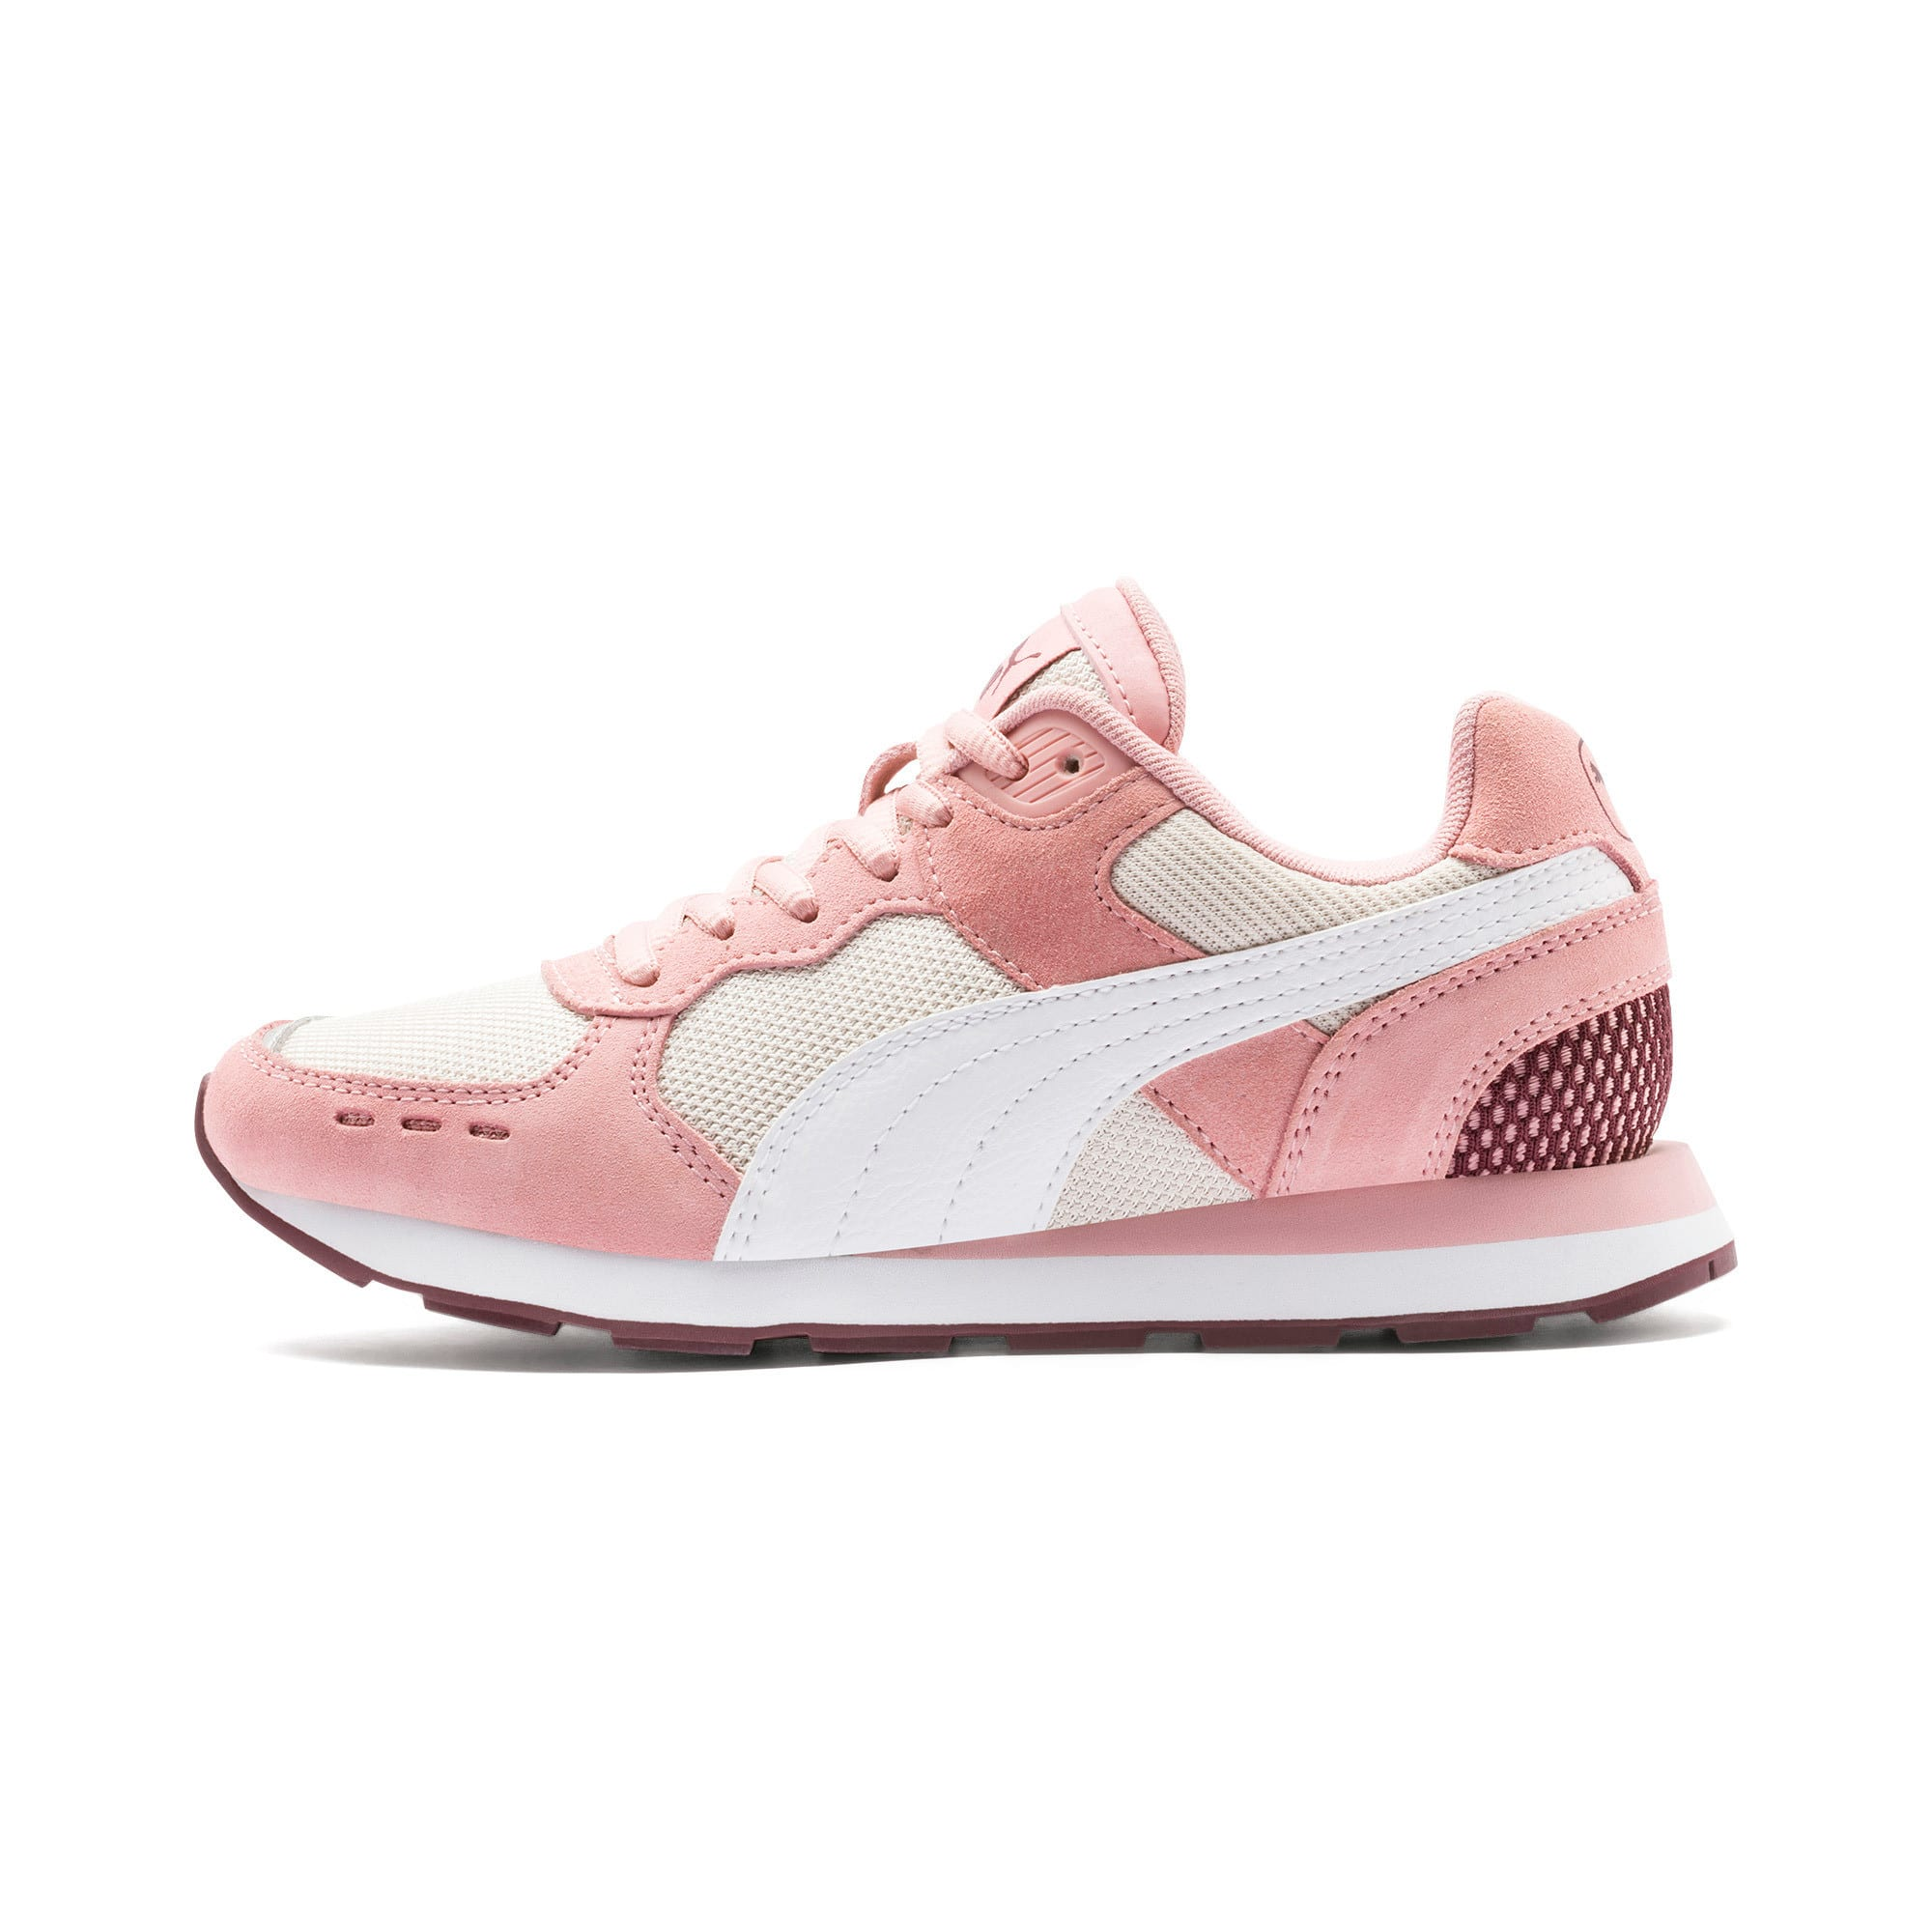 Thumbnail 1 of Vista Youth Trainers, Bridal Rose-Puma White, medium